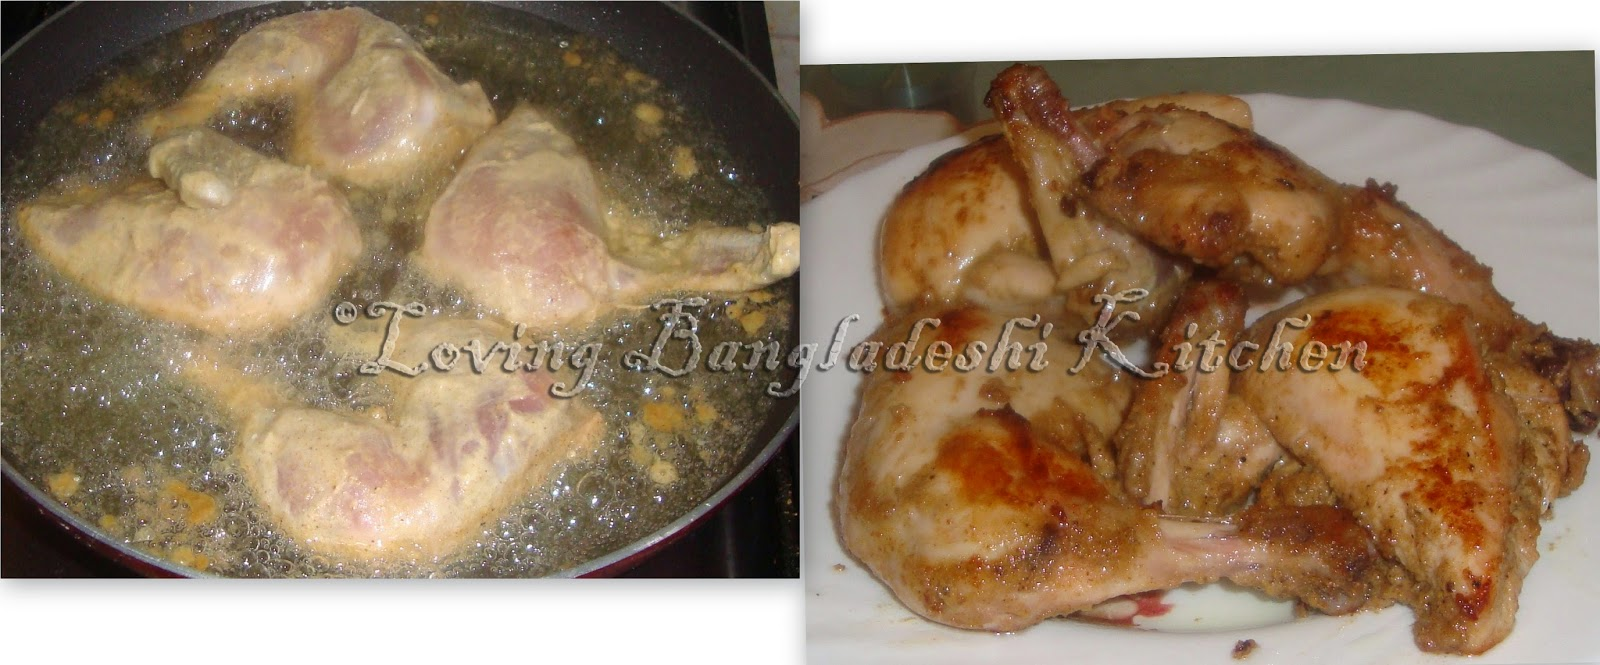 Loving bangladeshi kitchen chicken roast fry onion until it become deep golden brown add remaining marinated paste and stir add fried chicken to ccuart Image collections